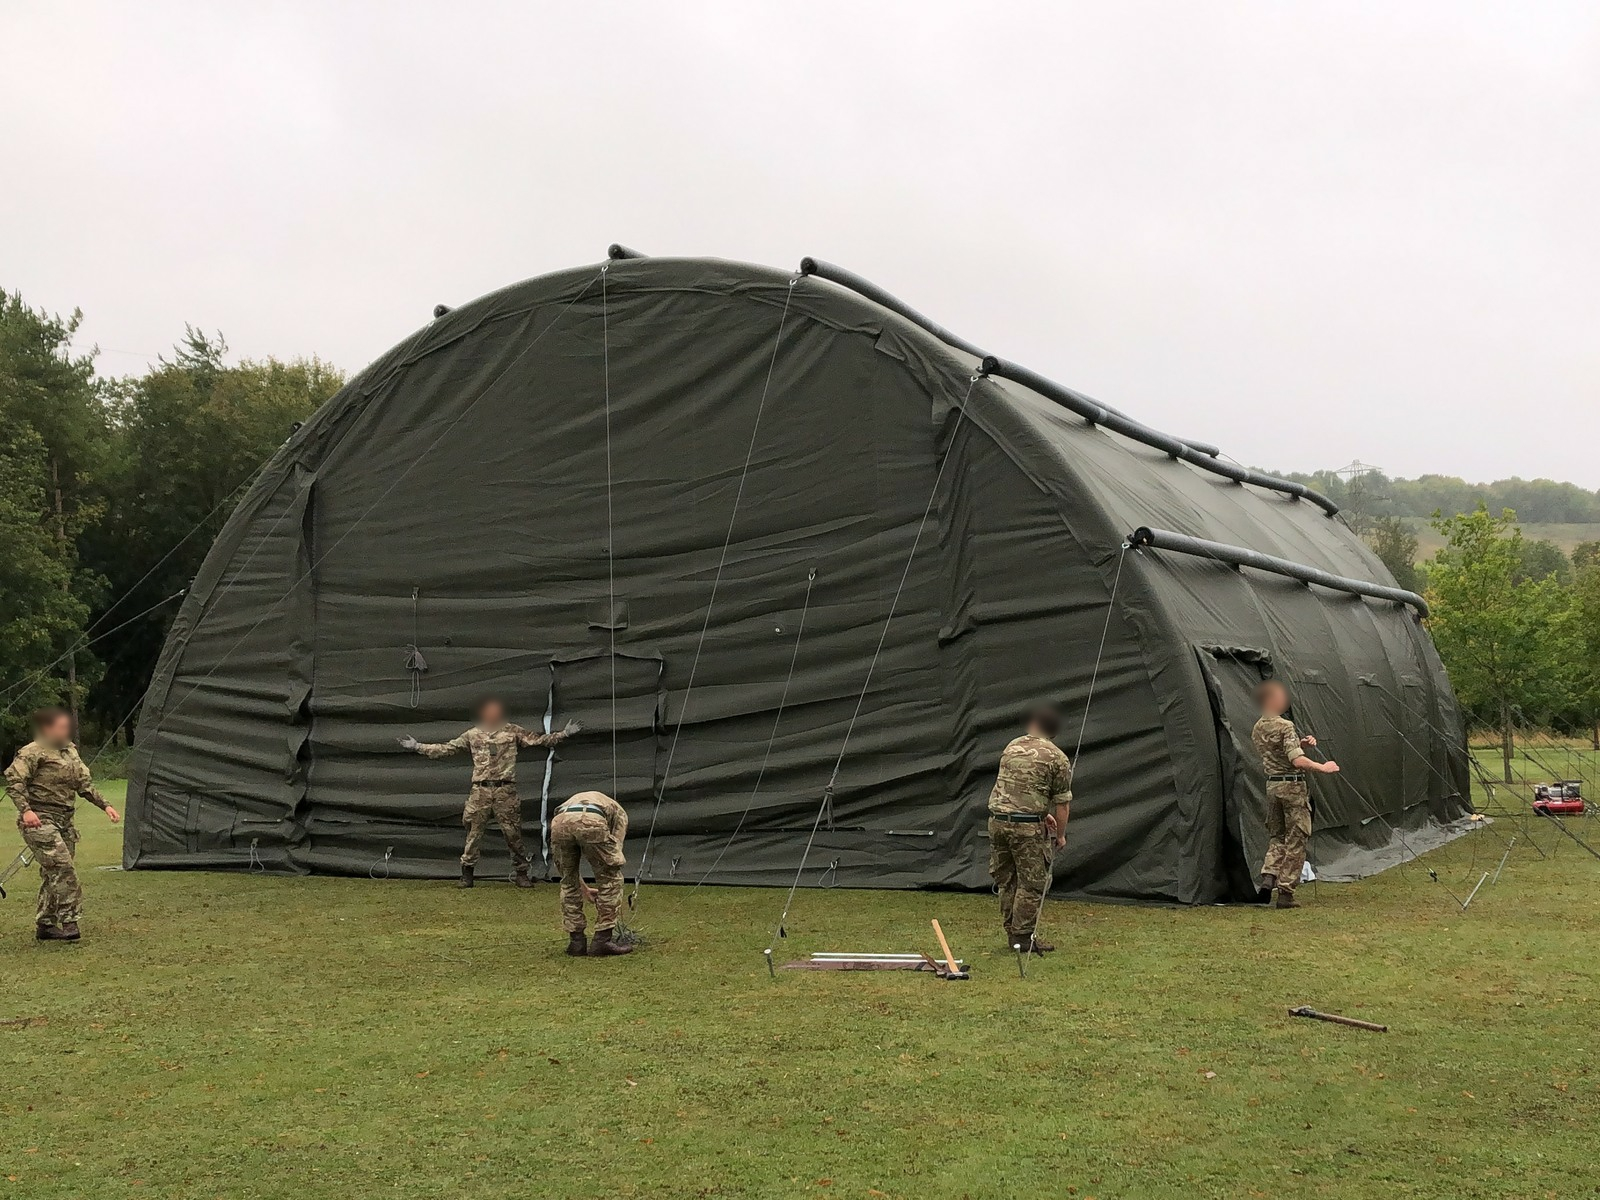 NIXUS RIBS 12.5m Span Inflatable Building on trials